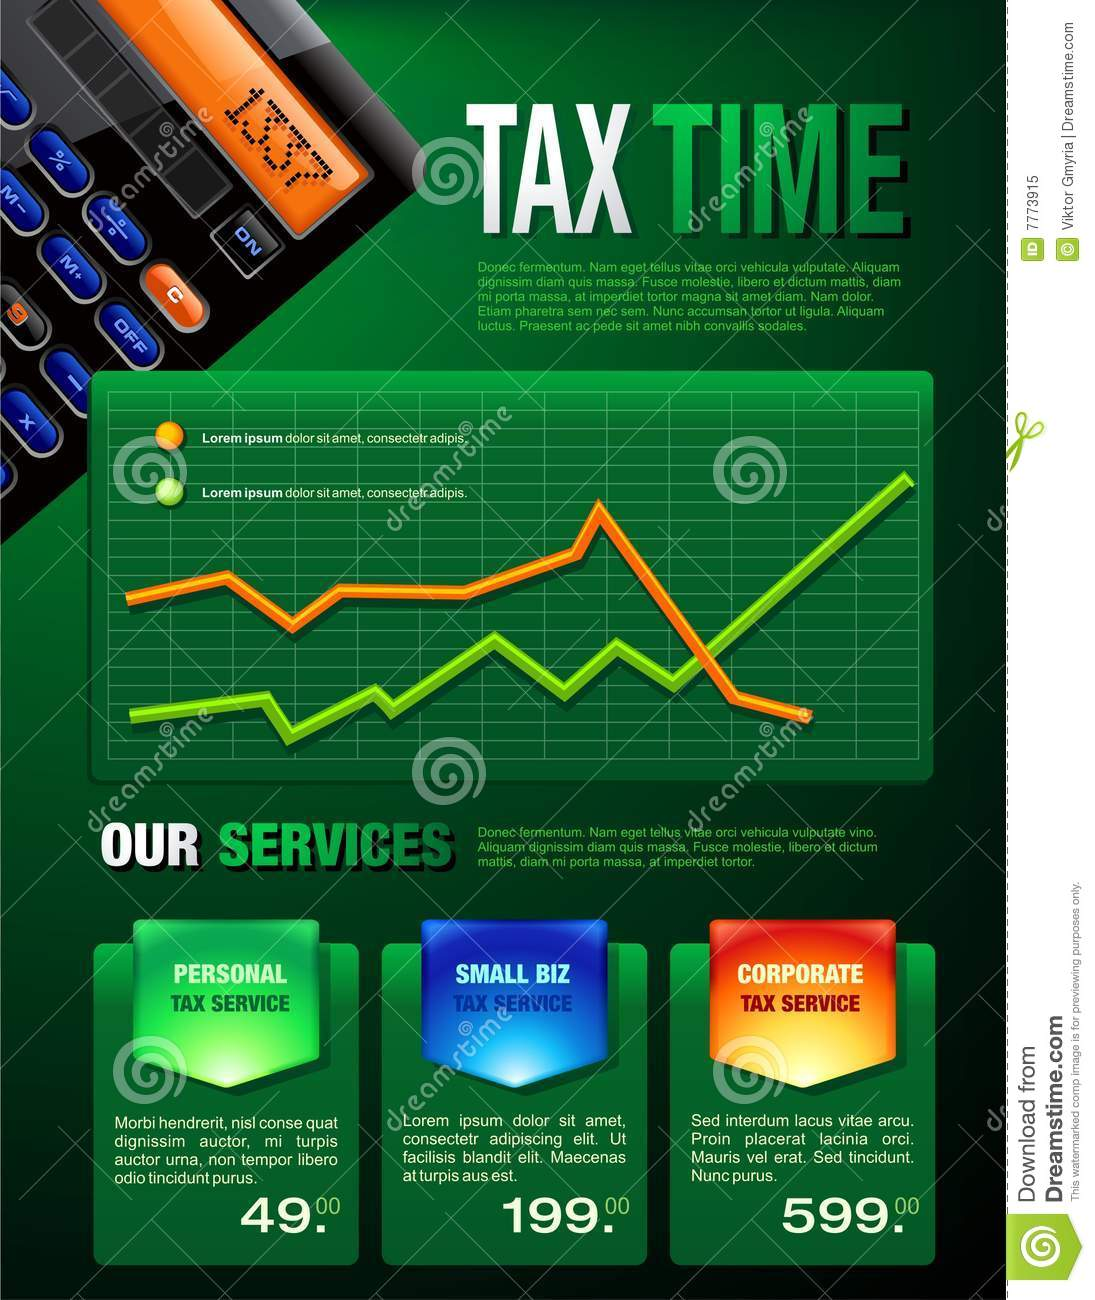 Tax Services Brochure Royalty Free Stock Photo Image 7773915